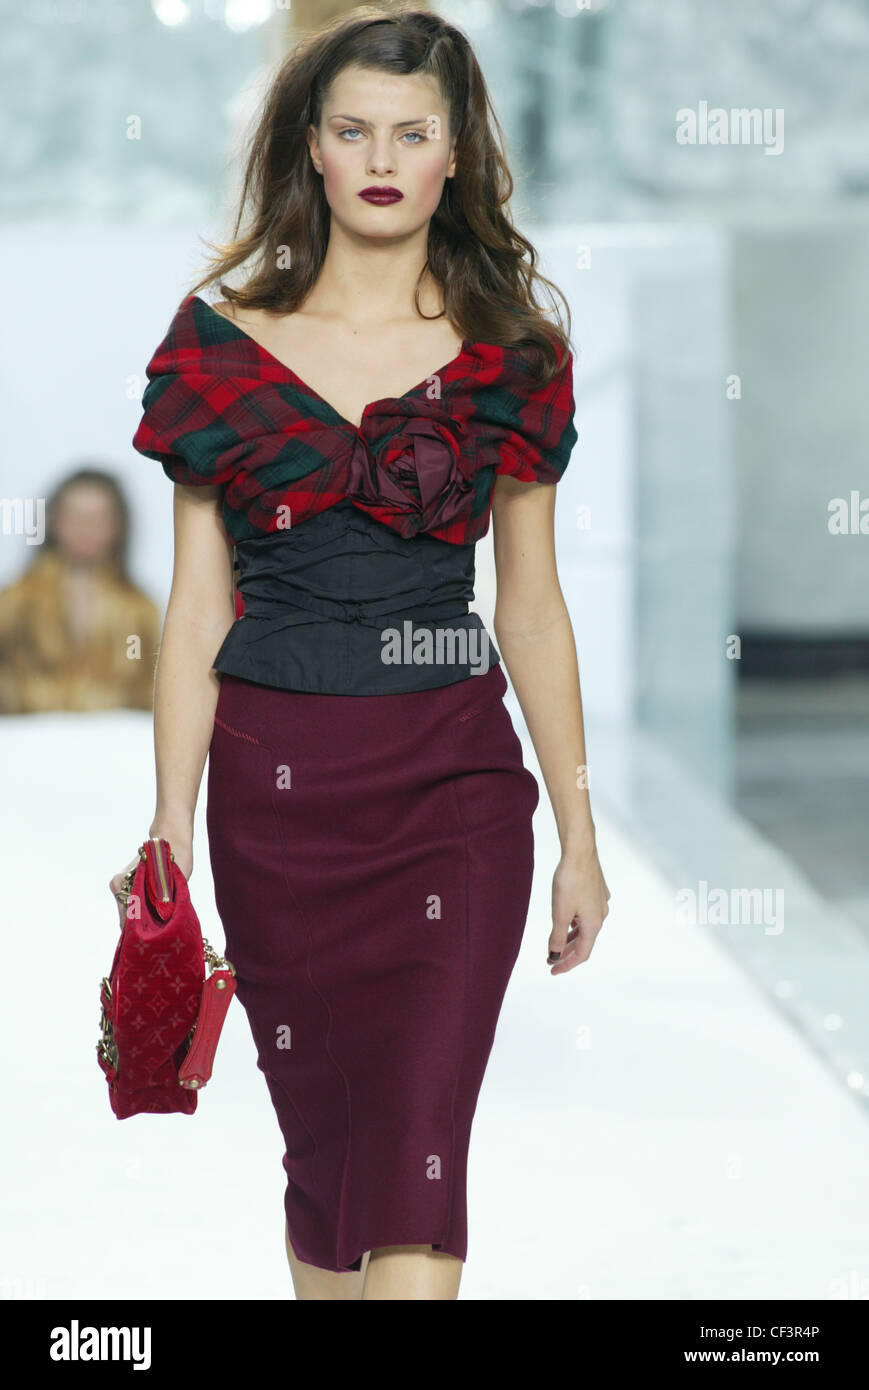 ae6fe117de94c9 Model long brunette hair wearing black off the shoulder top red and green  tartan sleeves and